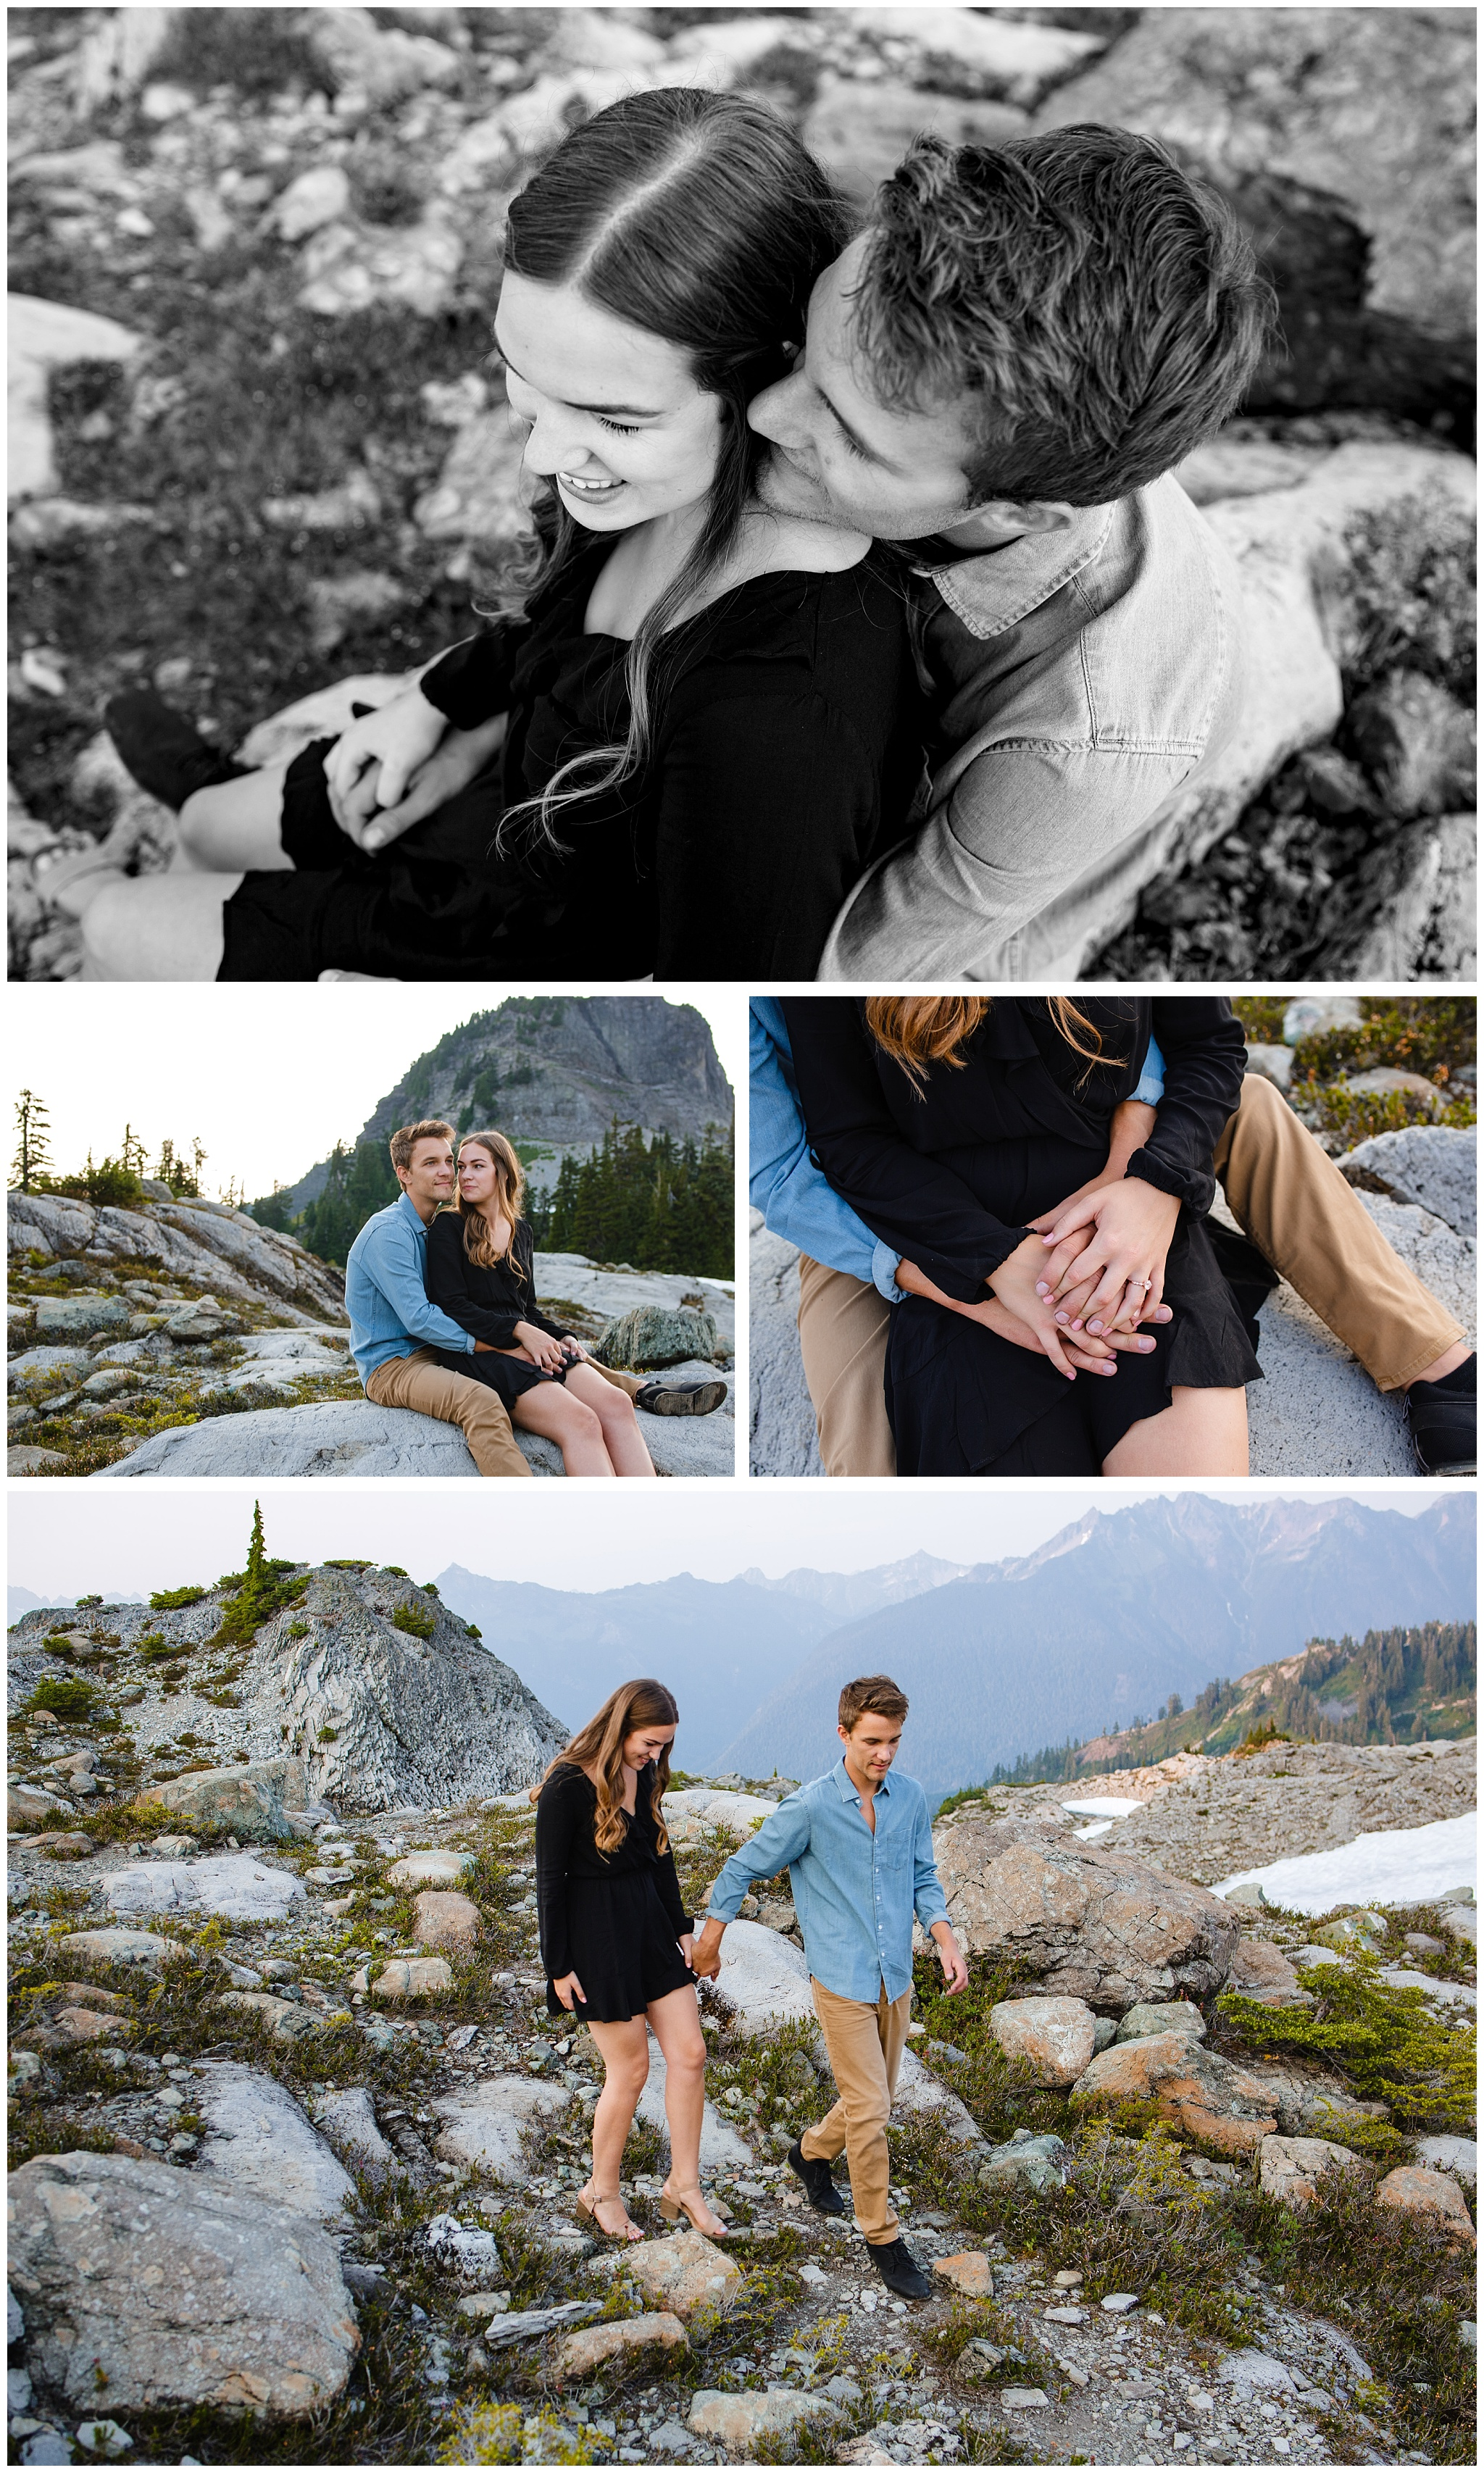 Mt Baker Artist Point Engagement Photography Mountain Inspo Couples Photographer Evening Romantic_0004.jpg